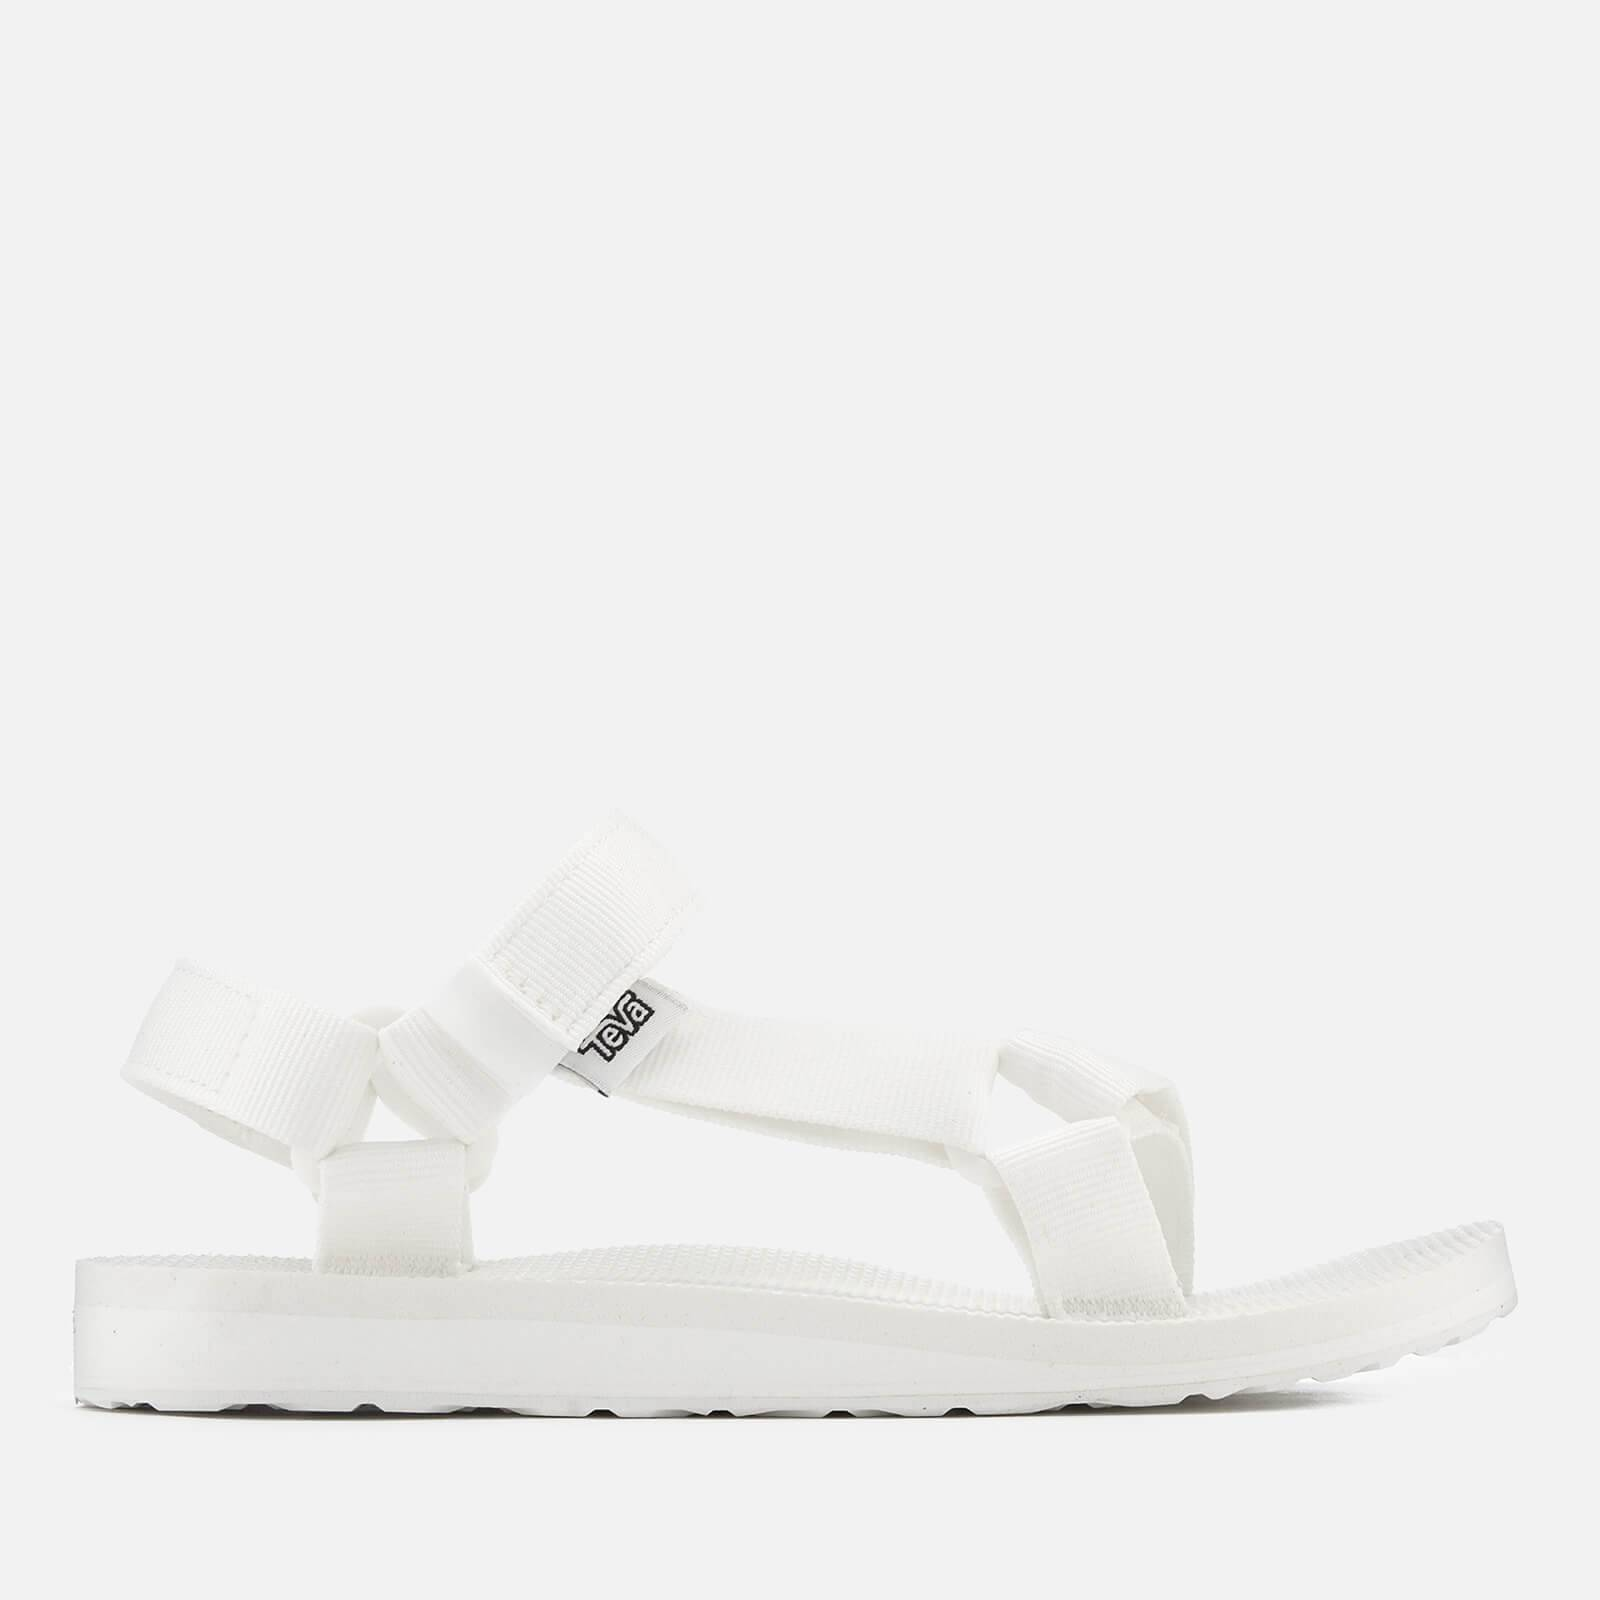 Teva Women's Original Universal Sport Sandals - Bright White - UK 3